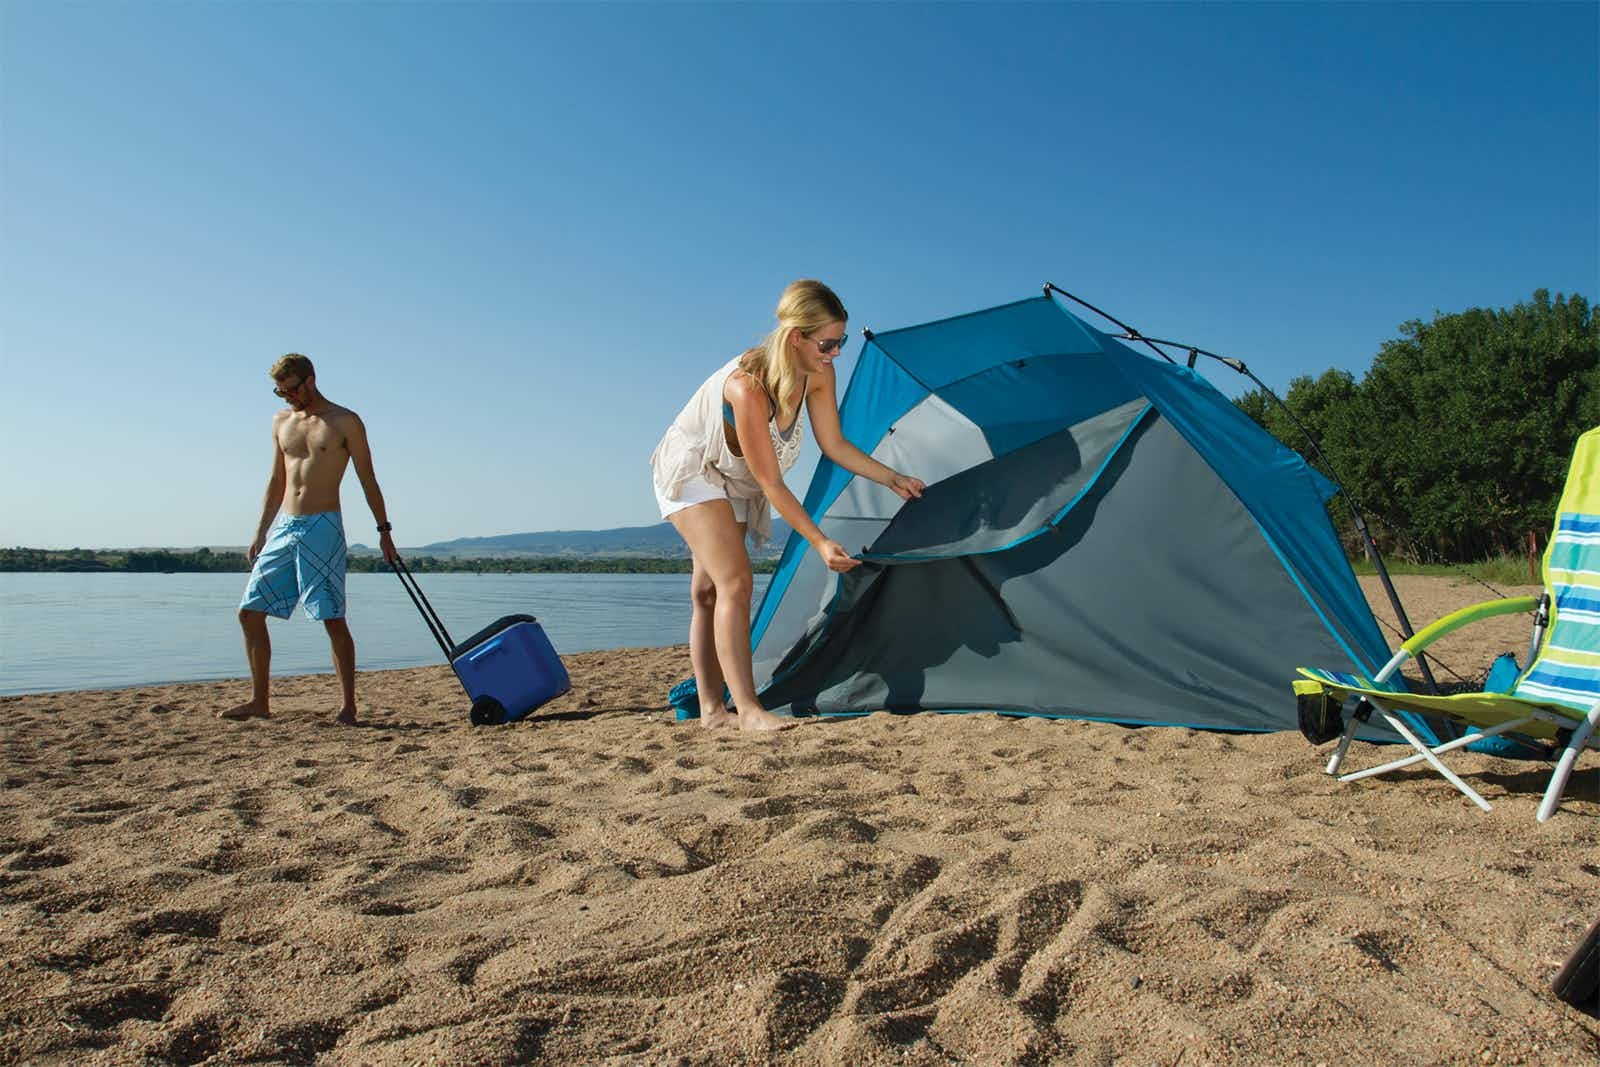 Coleman's Shoreline Instant Shade shelter goes up quick for maximum beach comfort © Image courtesy of the Coleman Company